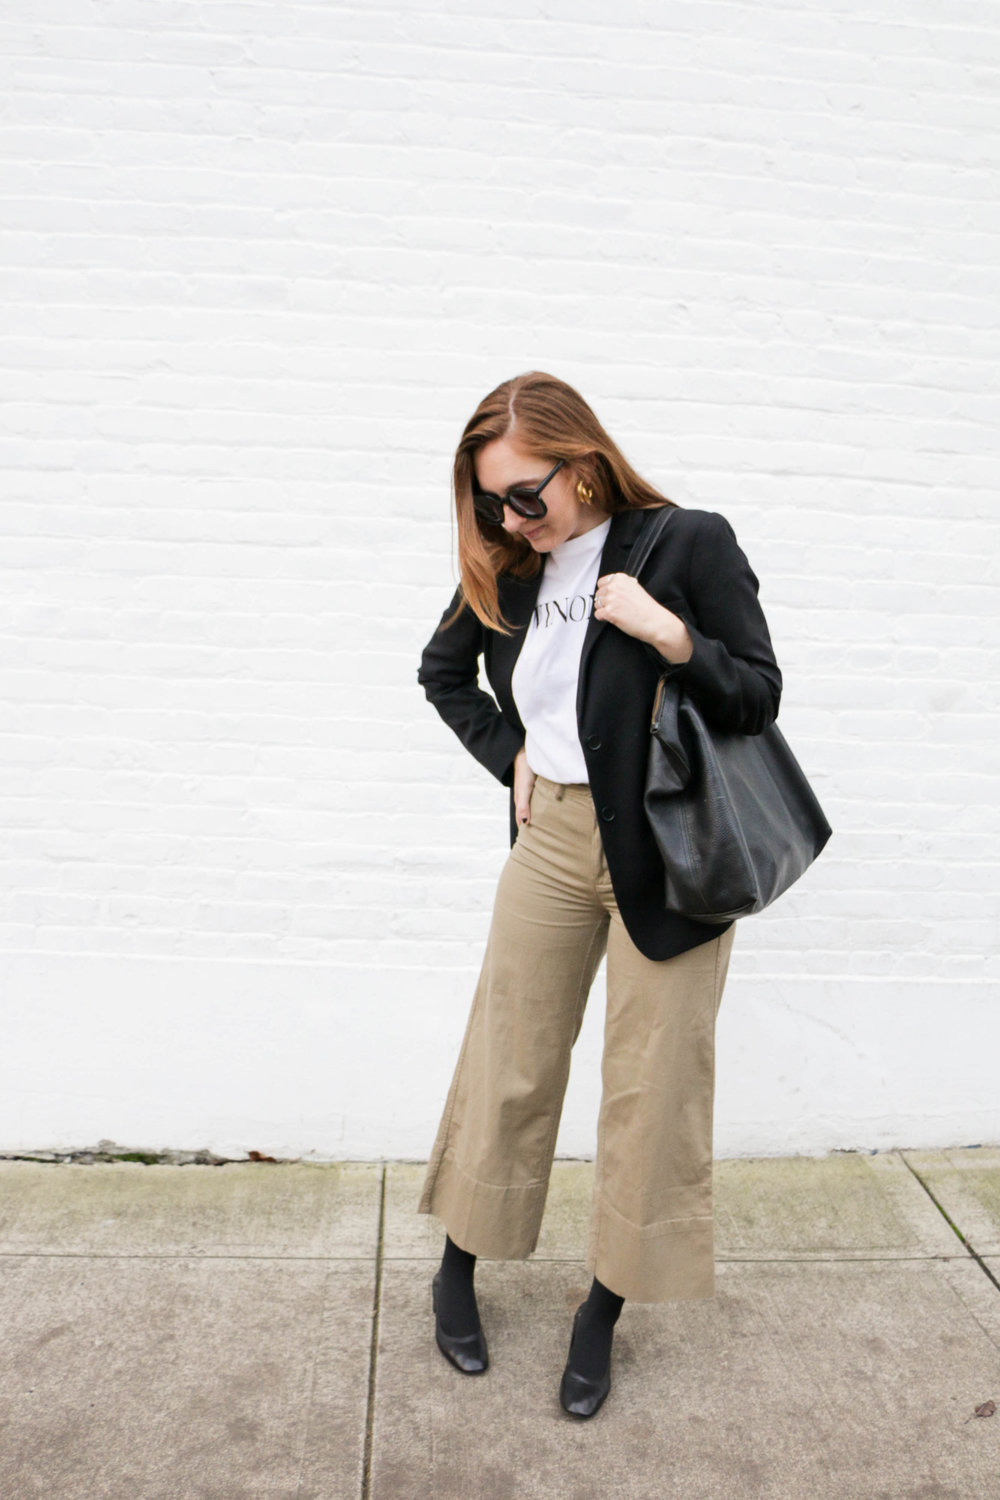 the-thoughtful-closet_everlane-oversized-blazer-review_-29.jpg